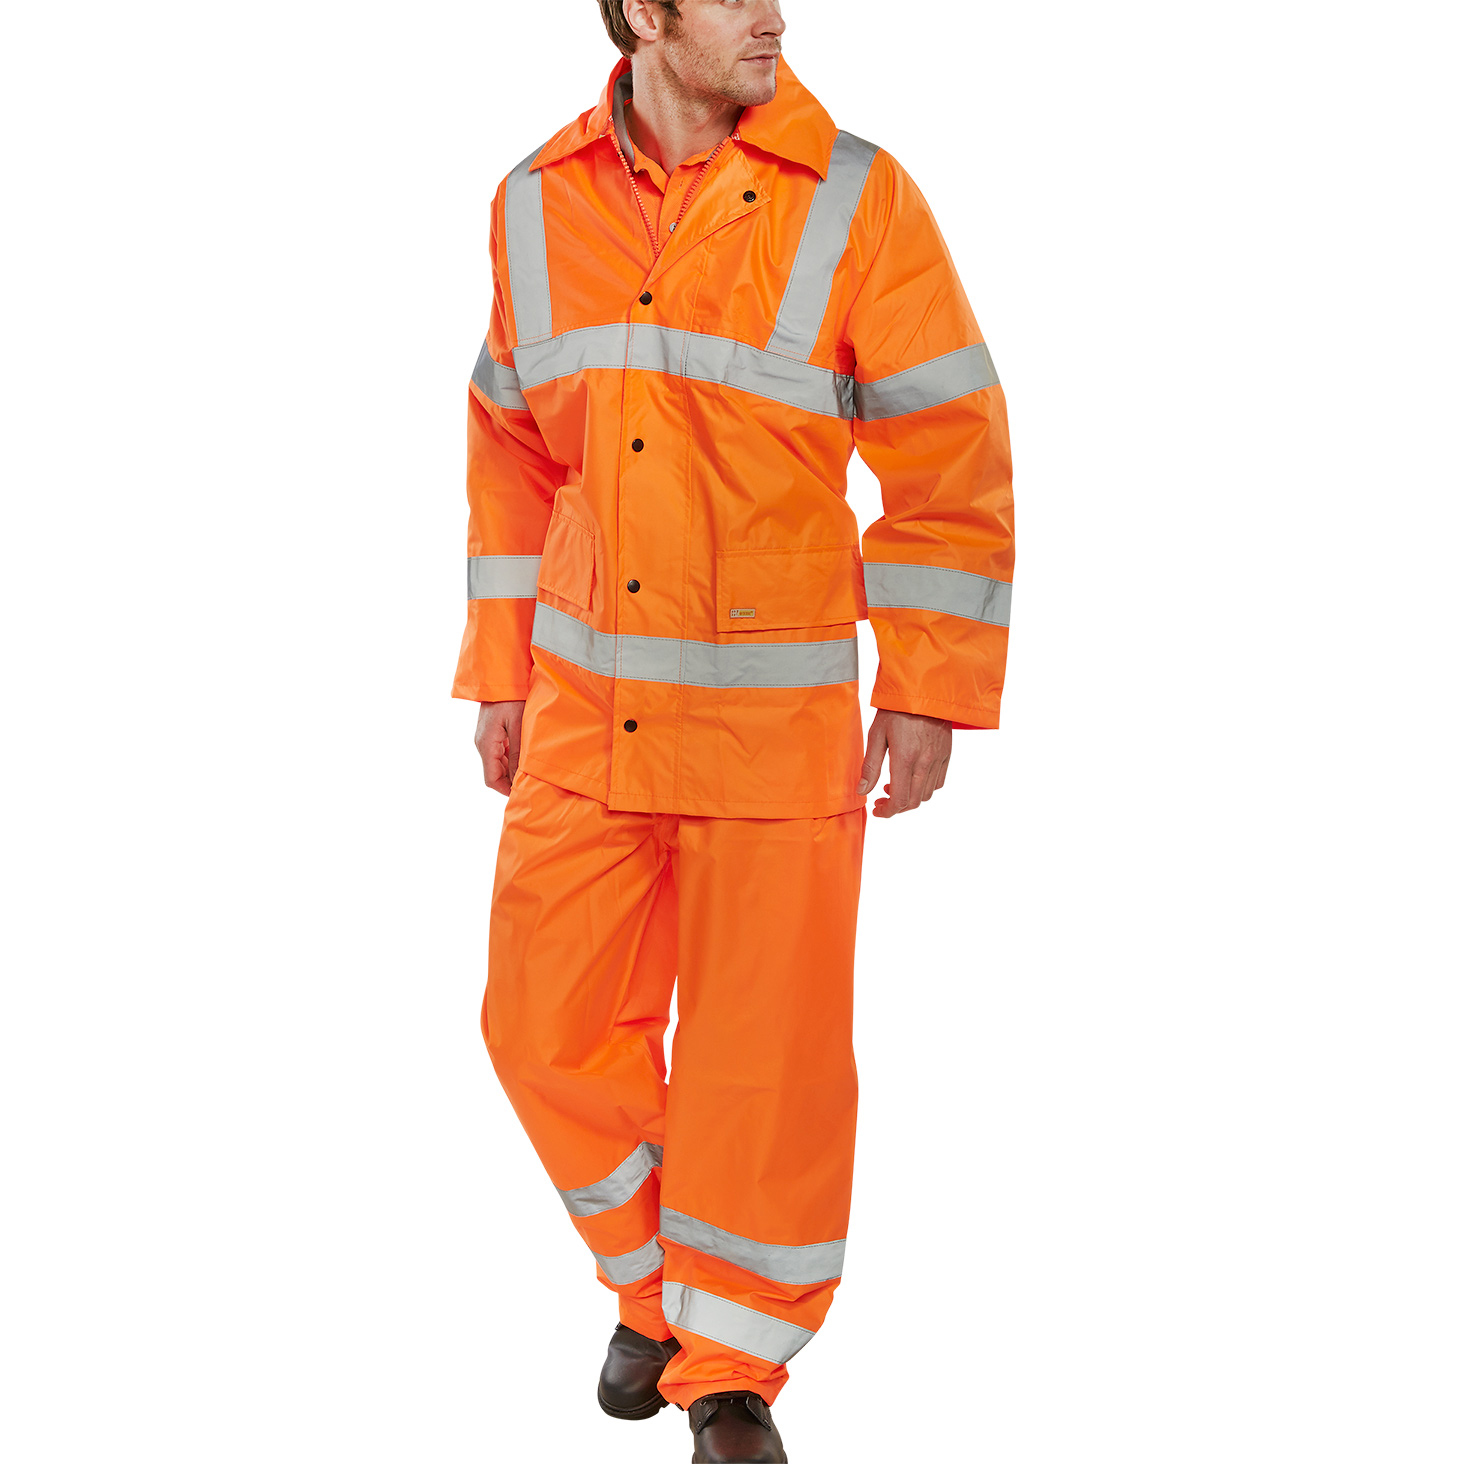 BSeen High Visibility Lightweight En471 En343 Suit 2XL Orange Ref TS8ORXXL *Up to 3 Day Leadtime*